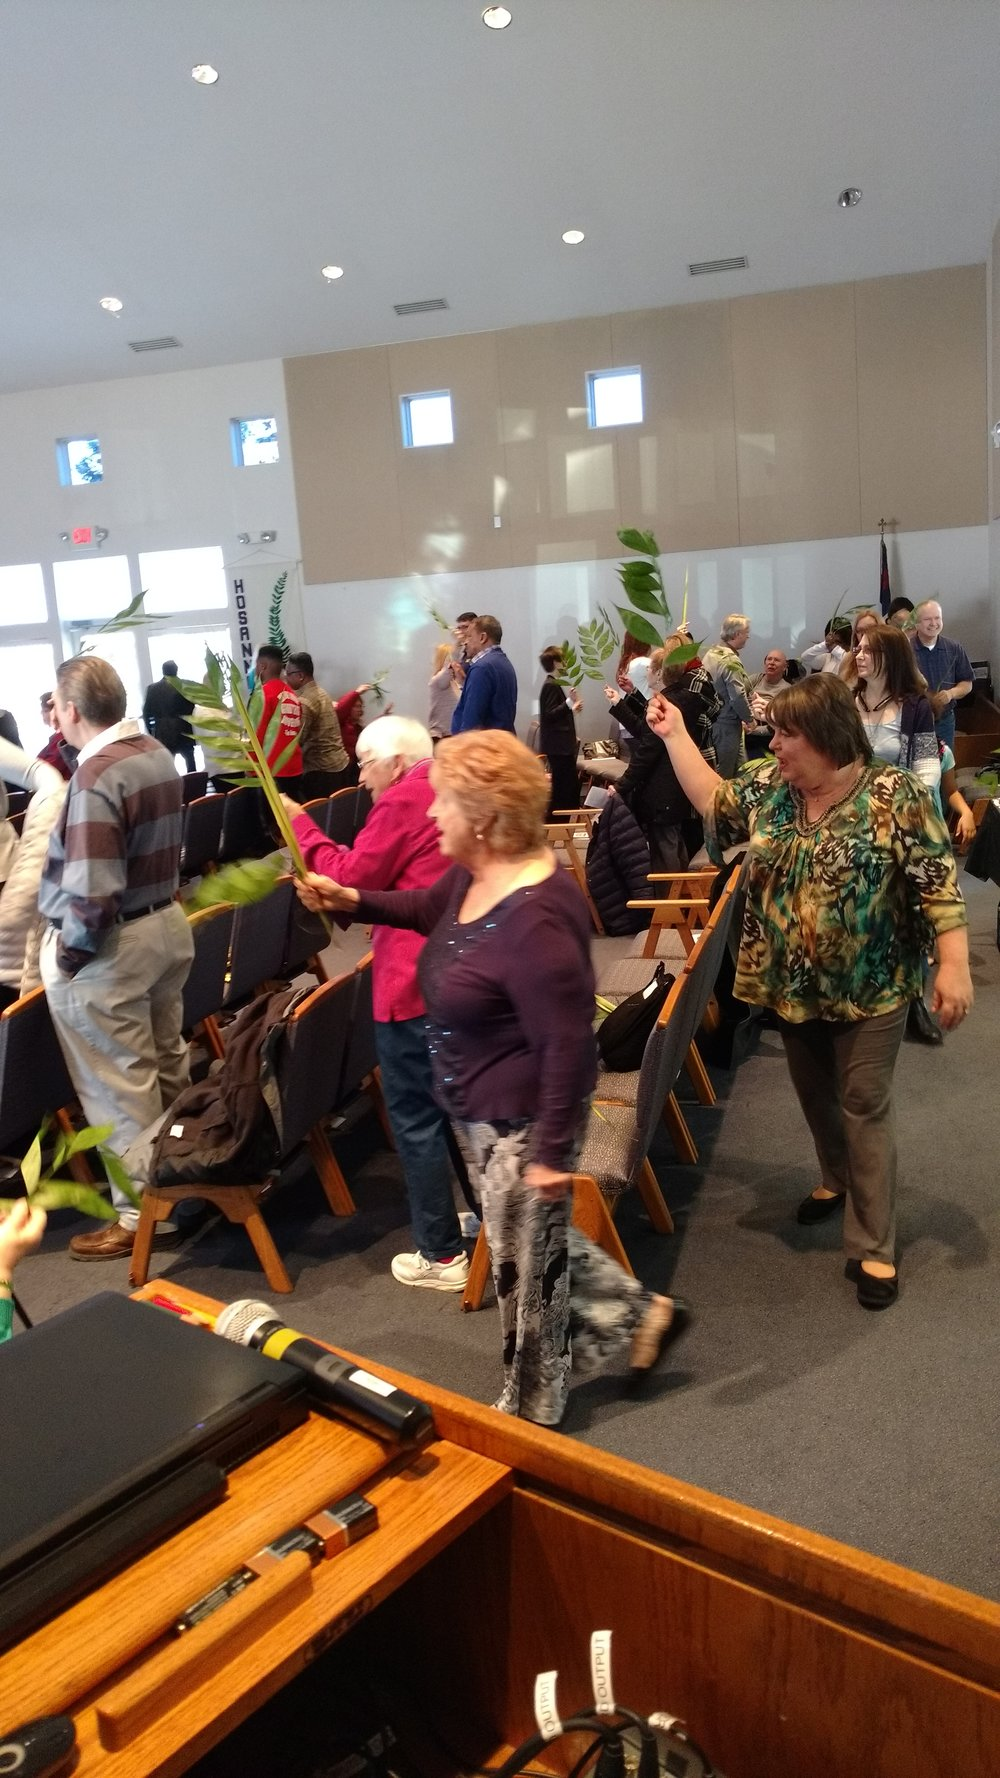 palm sunday pic 2.jpg